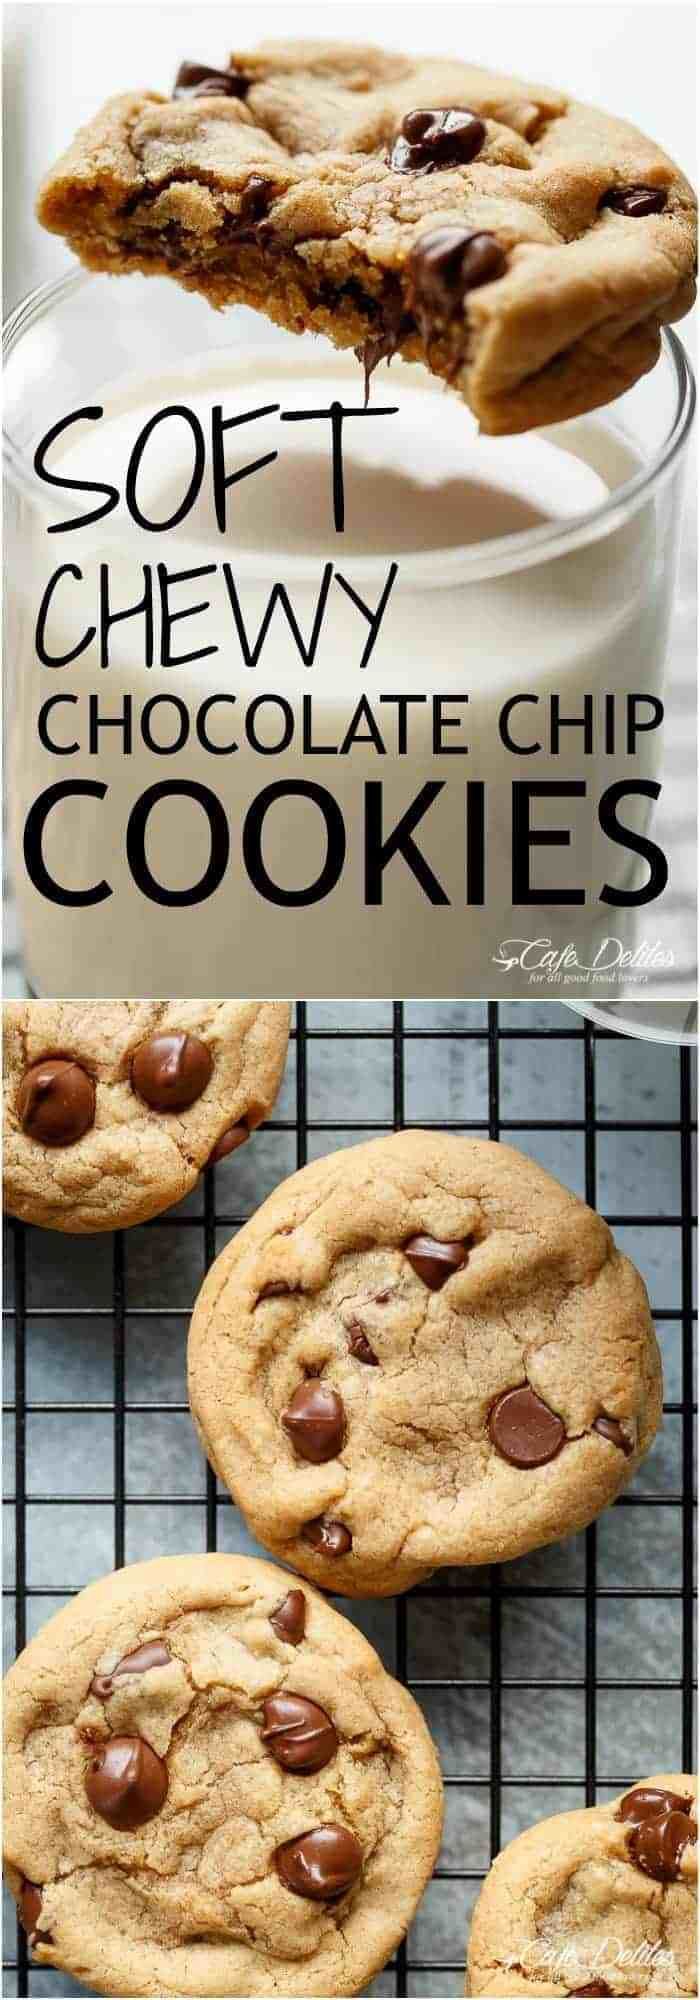 Chewy cookies recipes easy